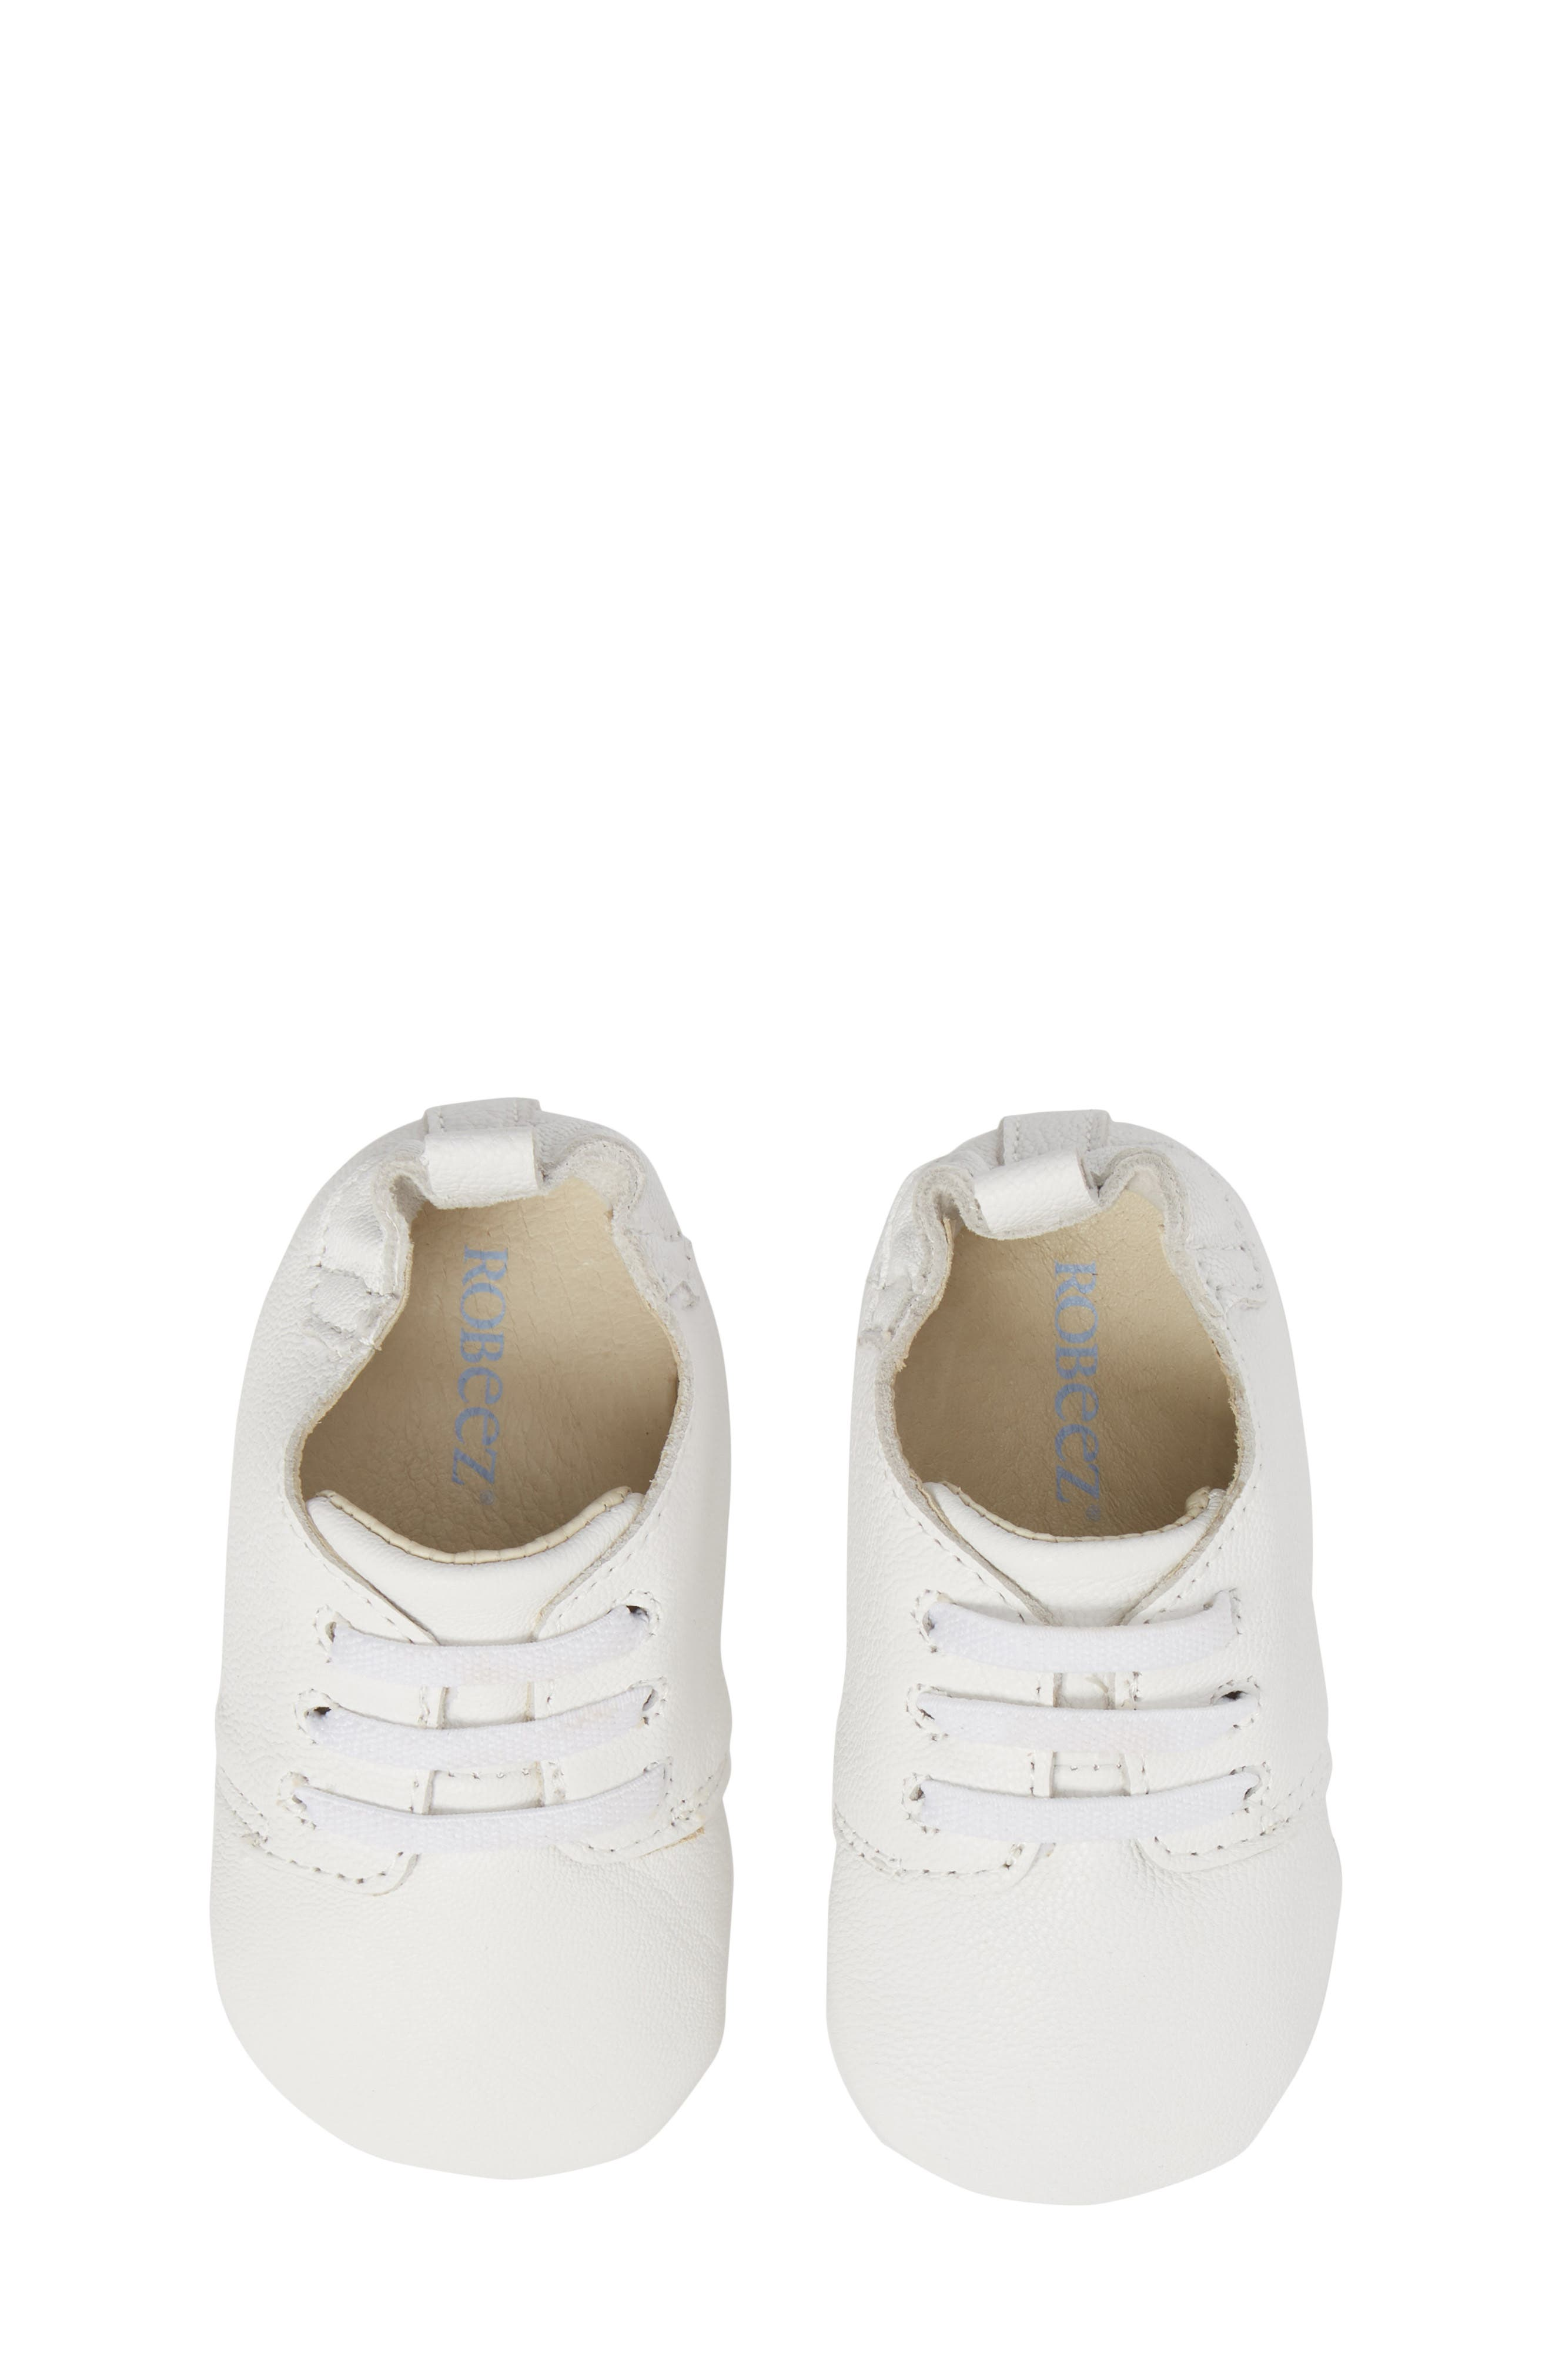 Owen Oxford Crib Shoe,                             Main thumbnail 1, color,                             White